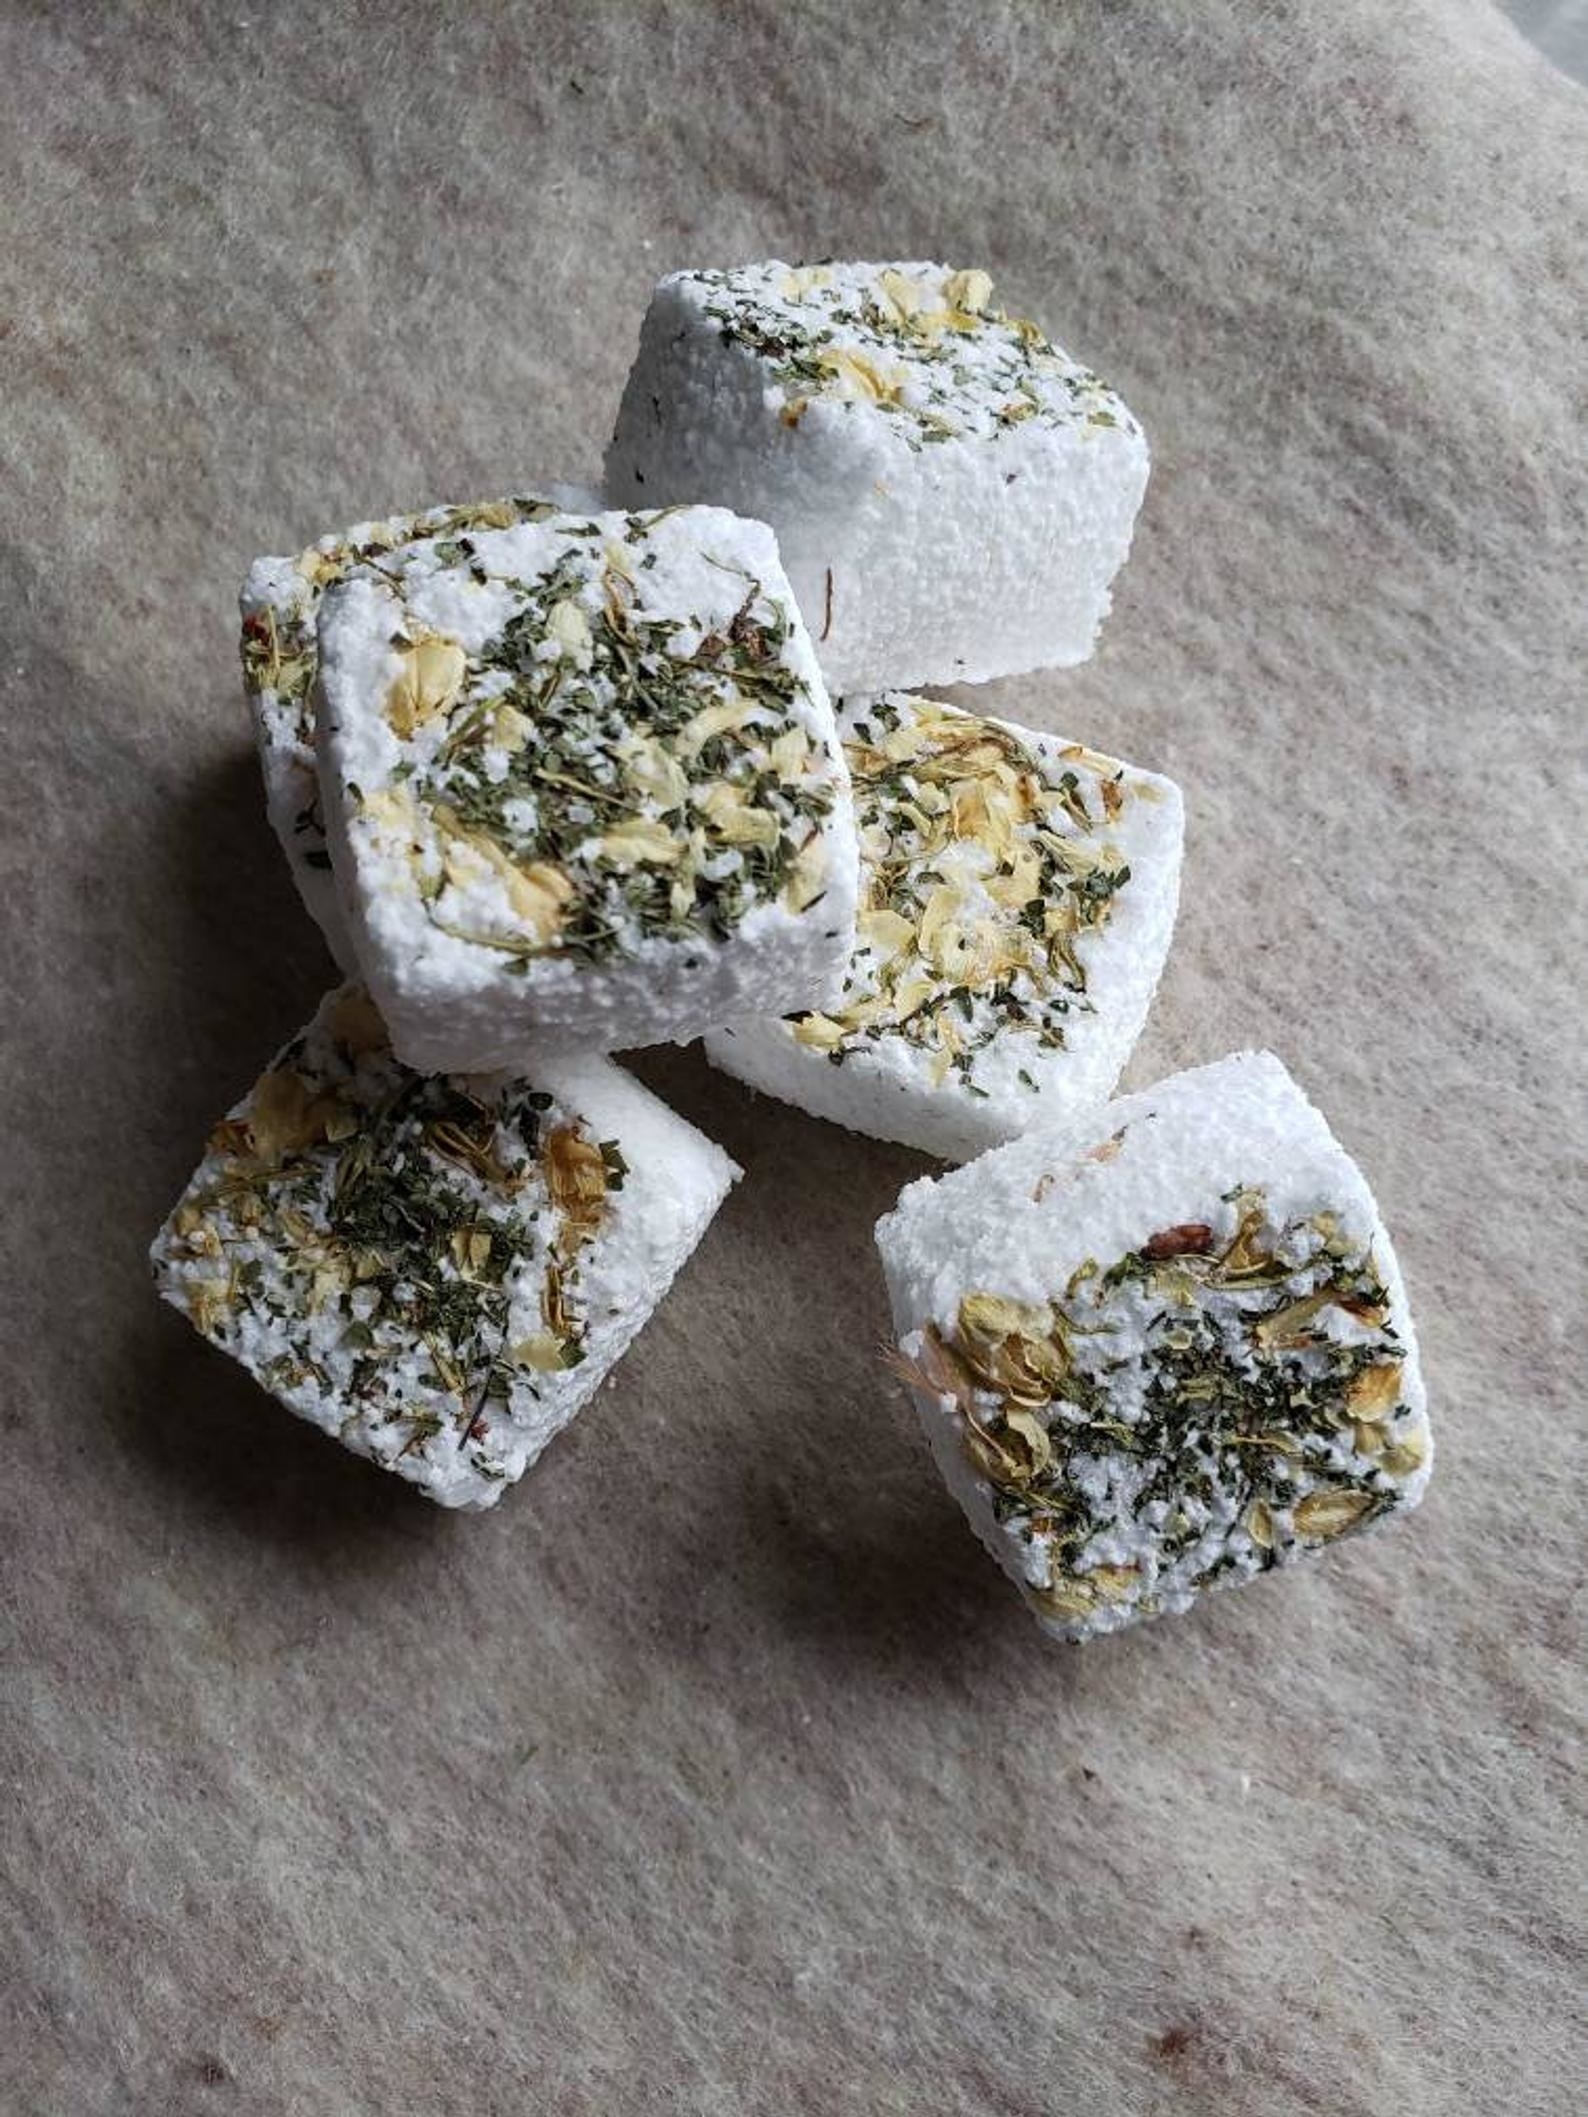 Cube fizzies with herbs in them